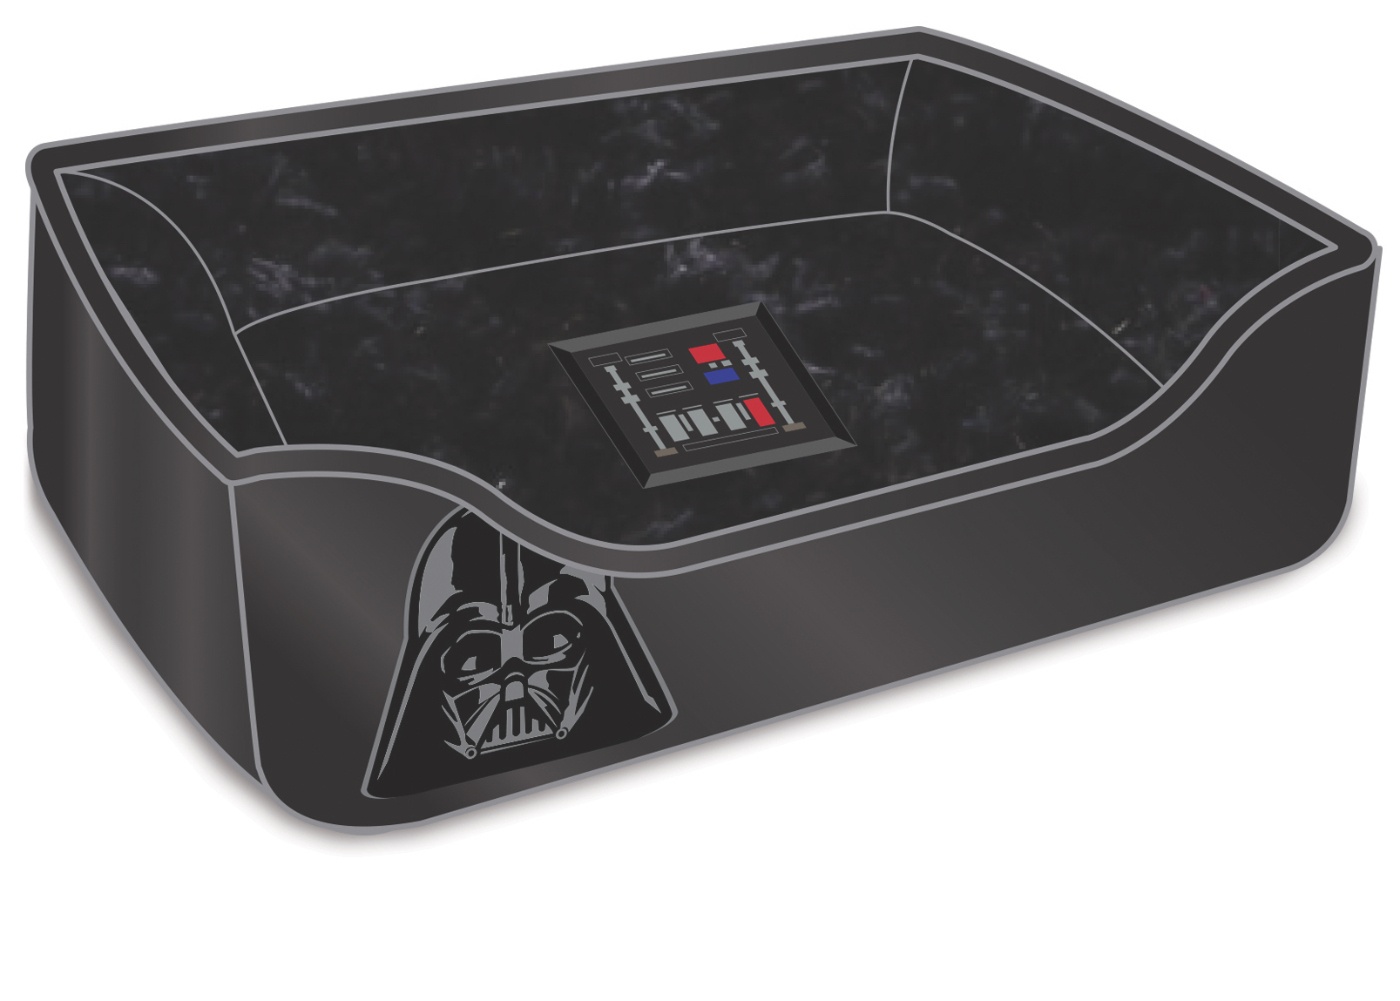 Darth-bed